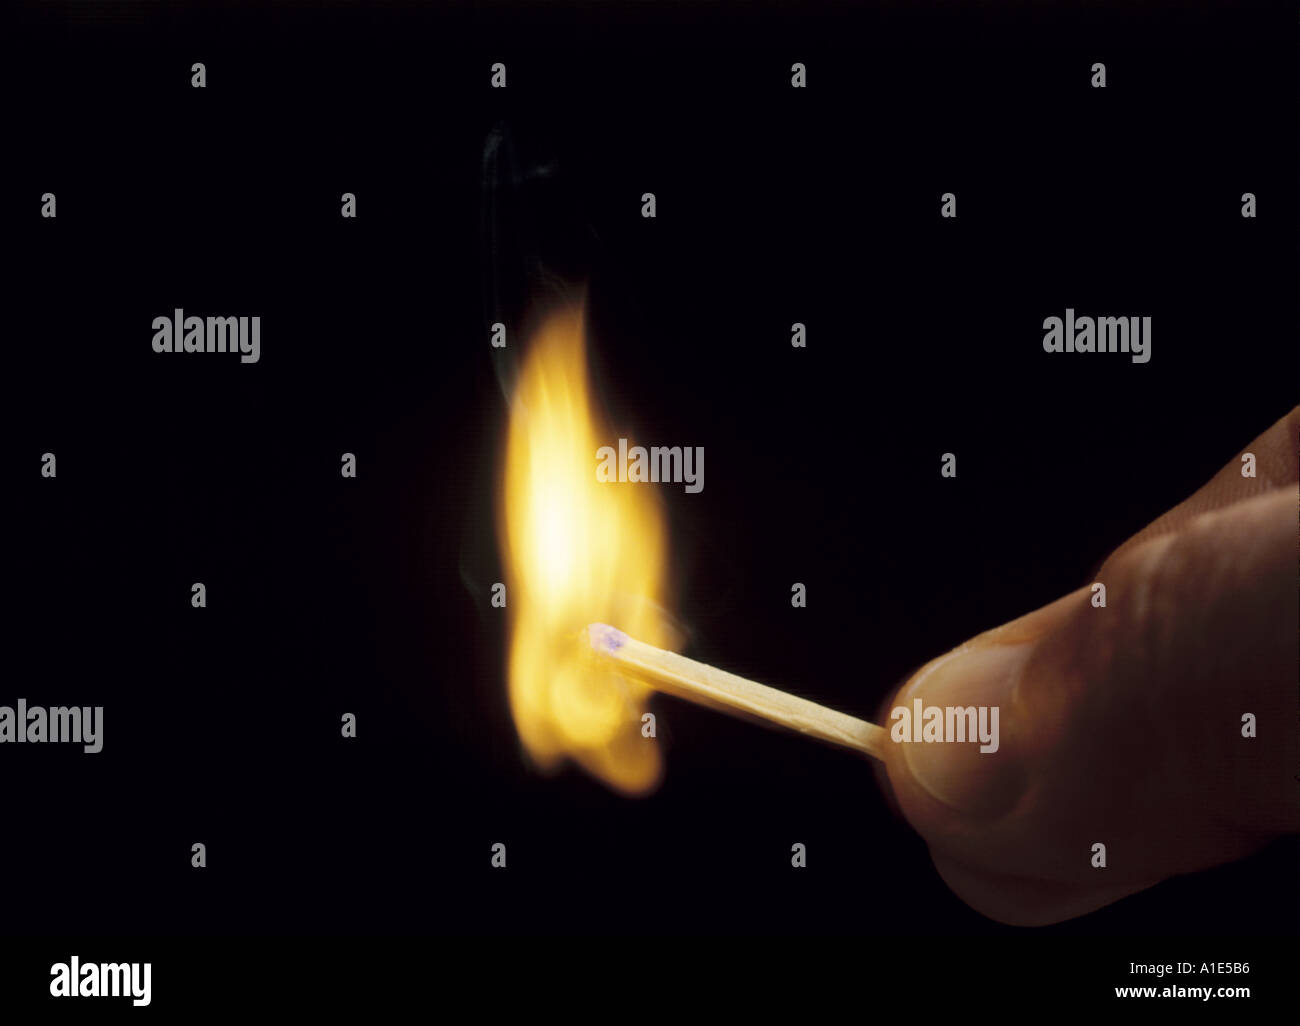 a match flaring after being struck - Stock Image